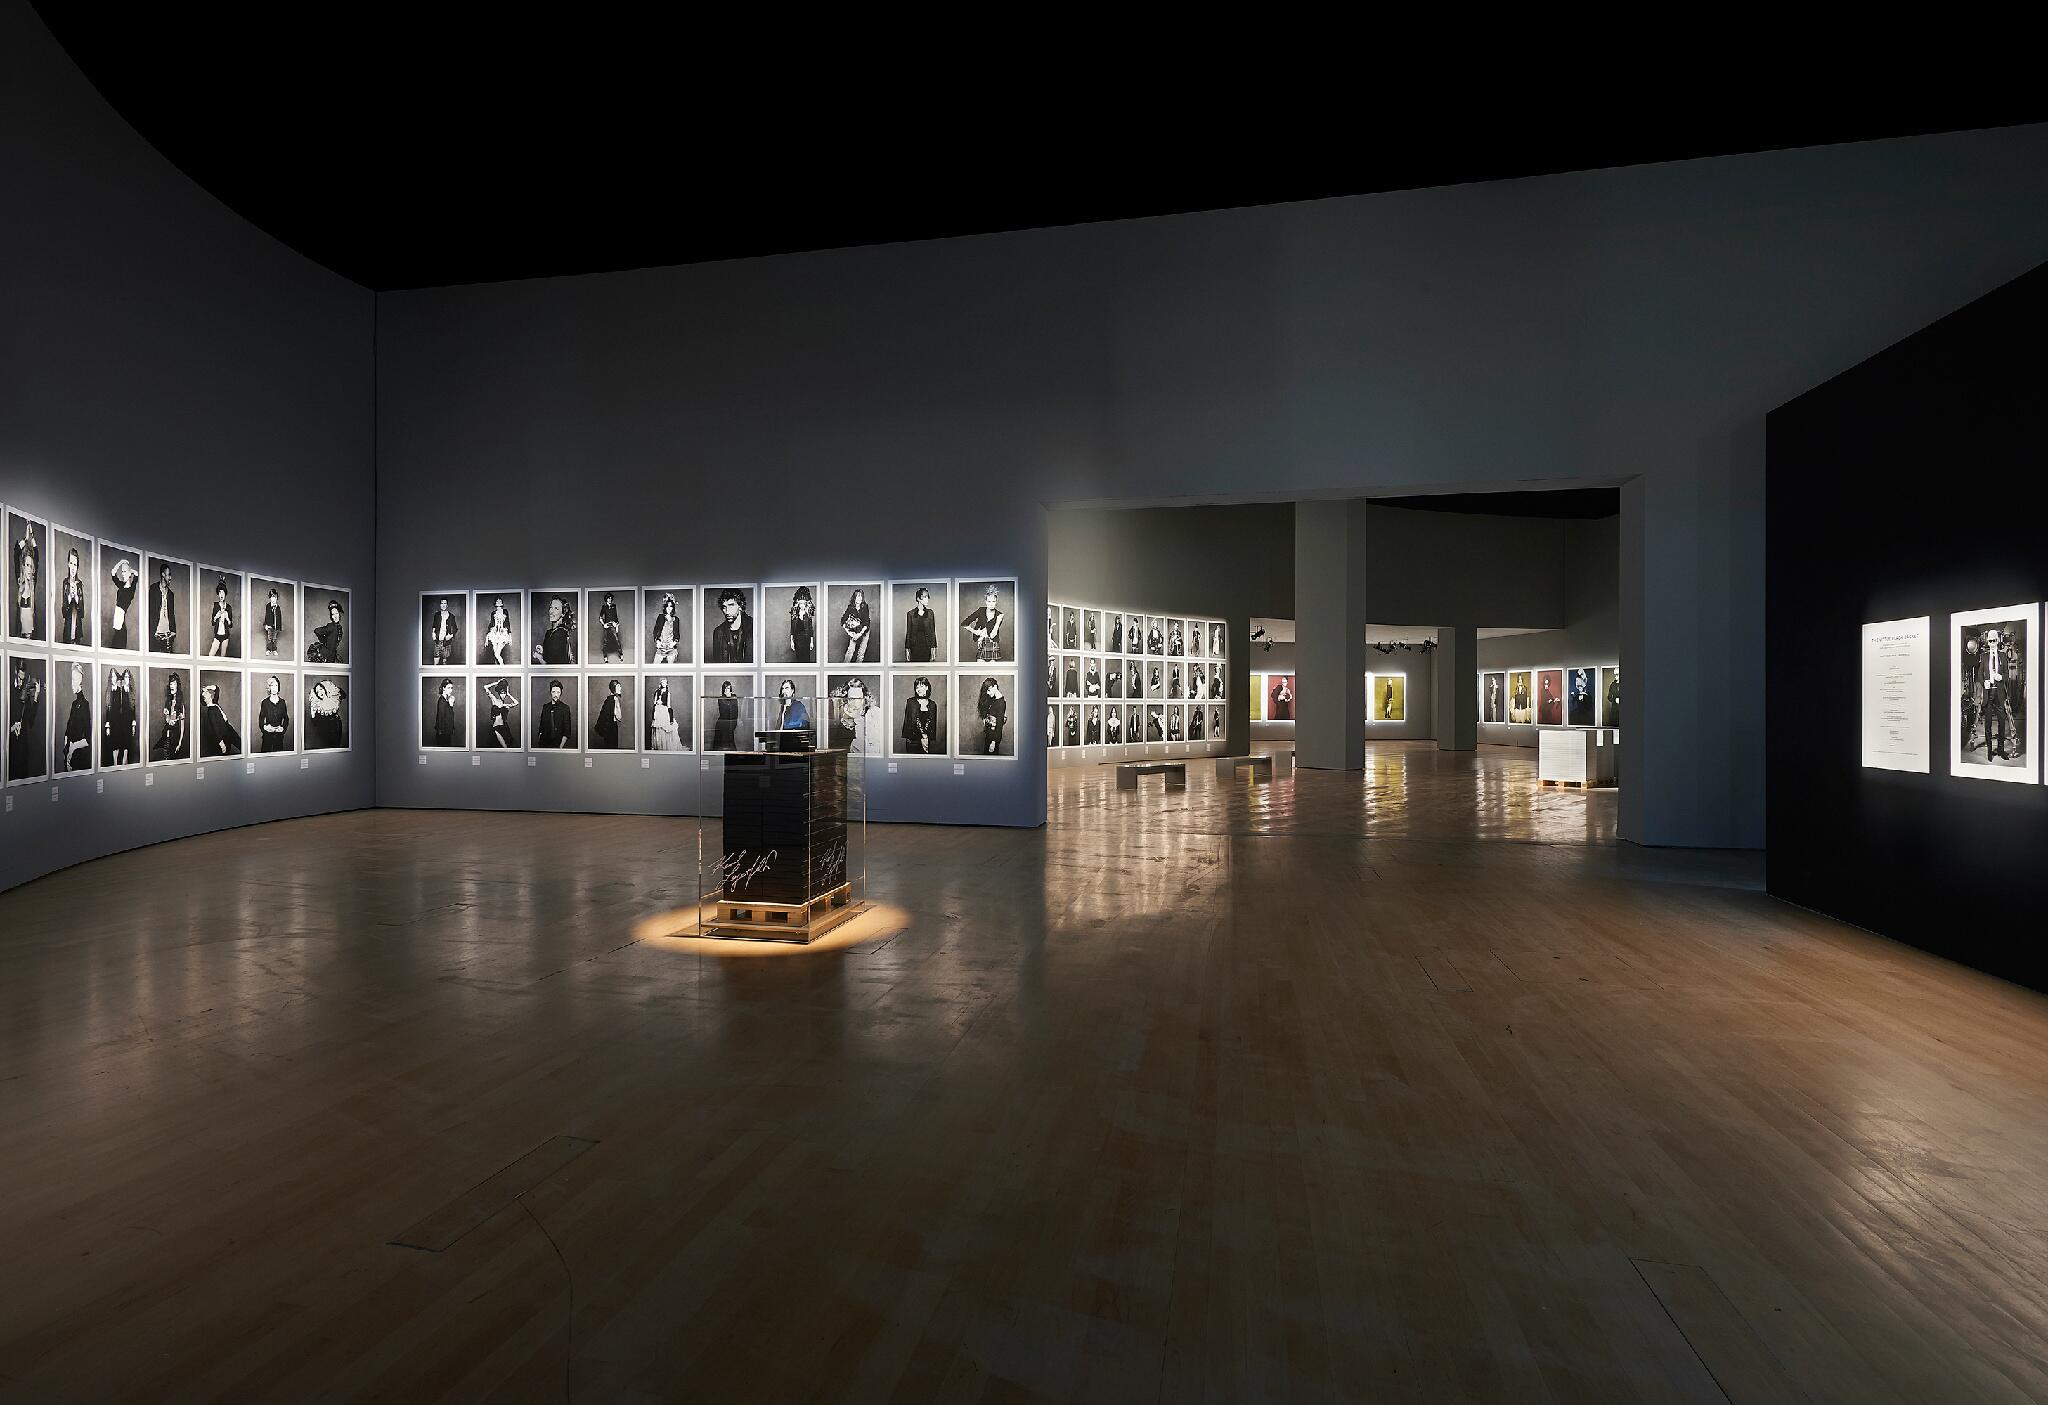 Singapore will host #thelittleblackjacket CHANEL exhibition through January 1st http://t.co/u6xQ3Ba8x8